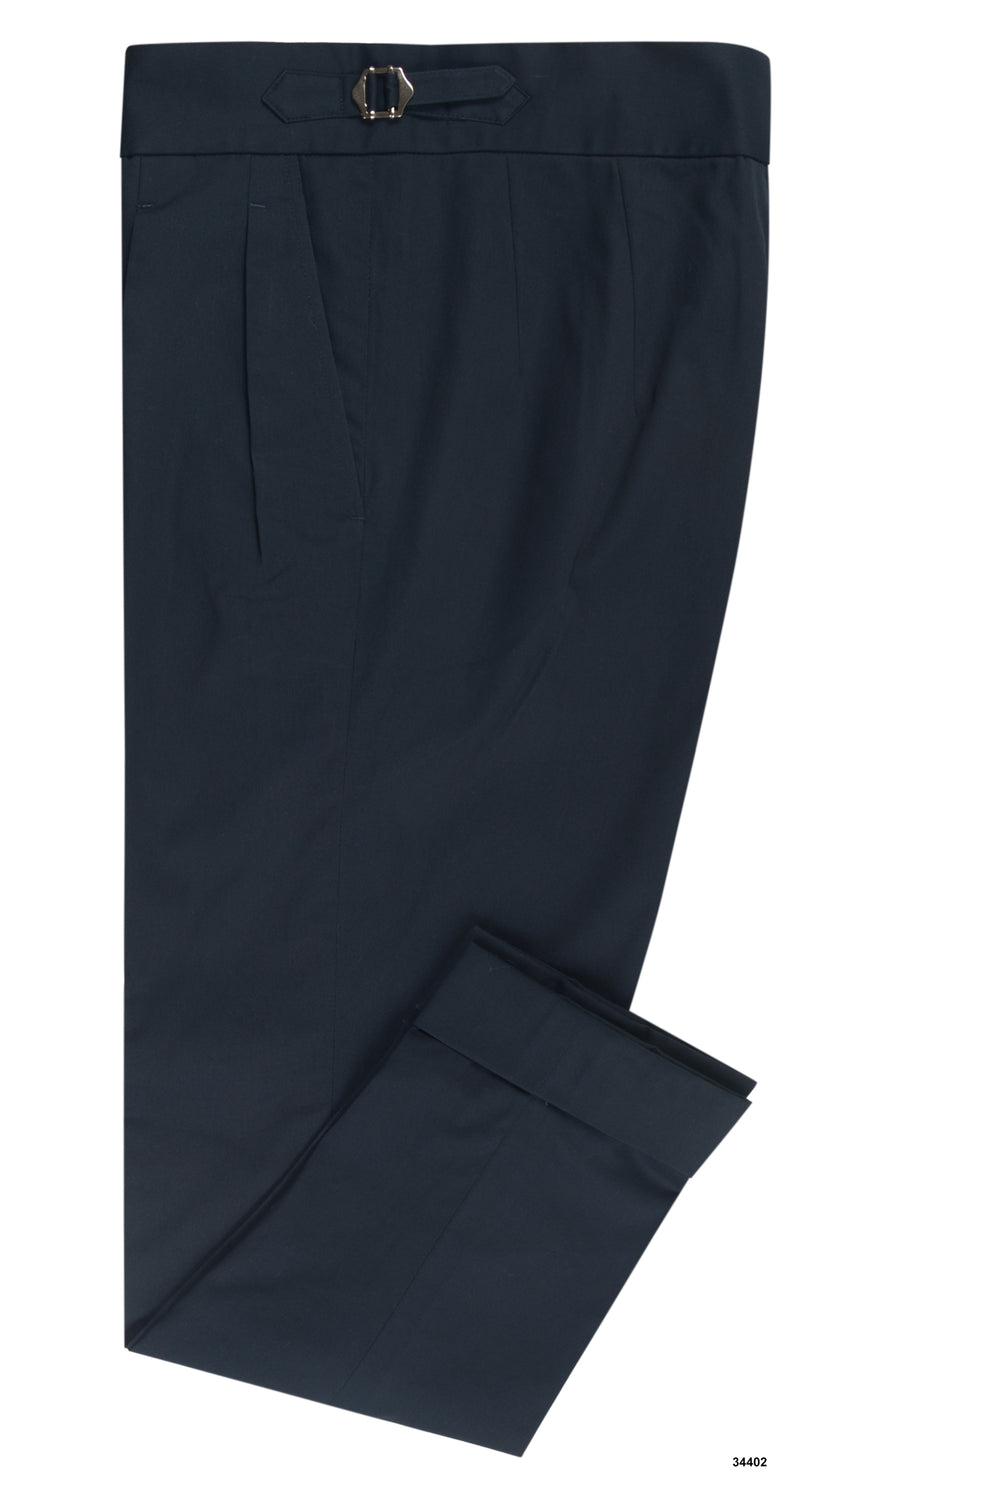 Luxire Fit-Test Trial Pants